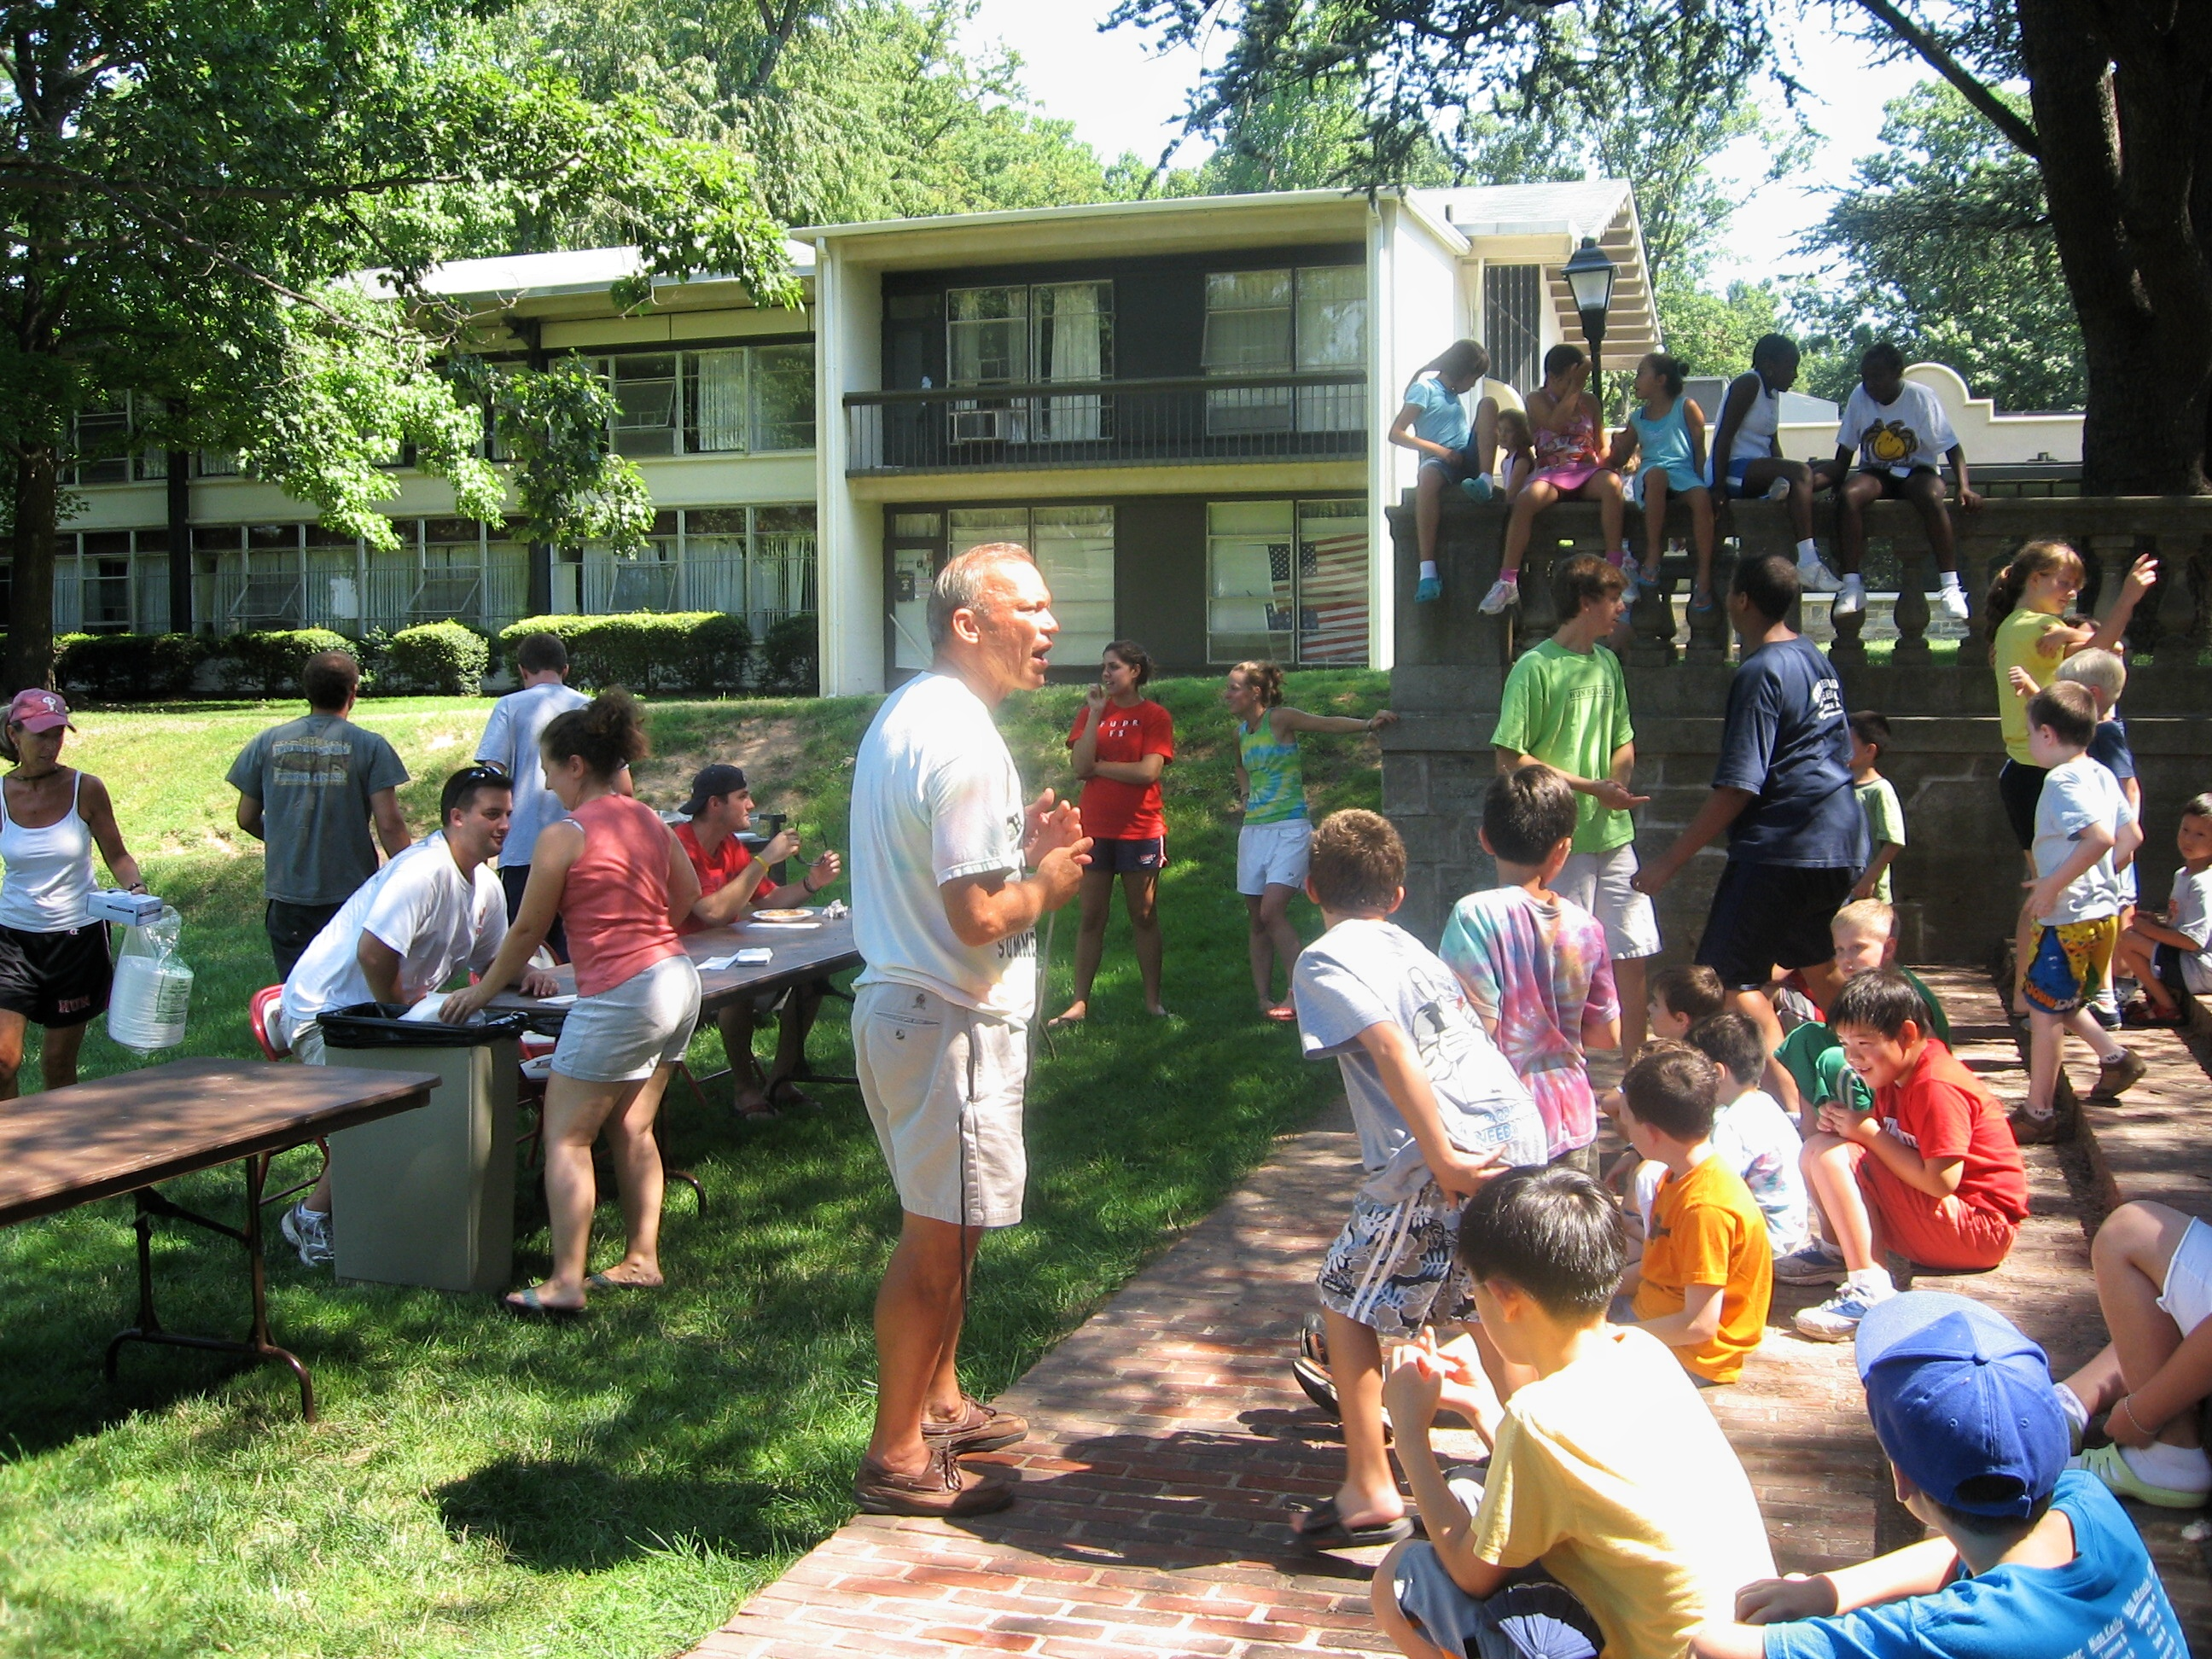 Summer Program - Traditional Camp | The Hun School of Princeton Summer Day Camp